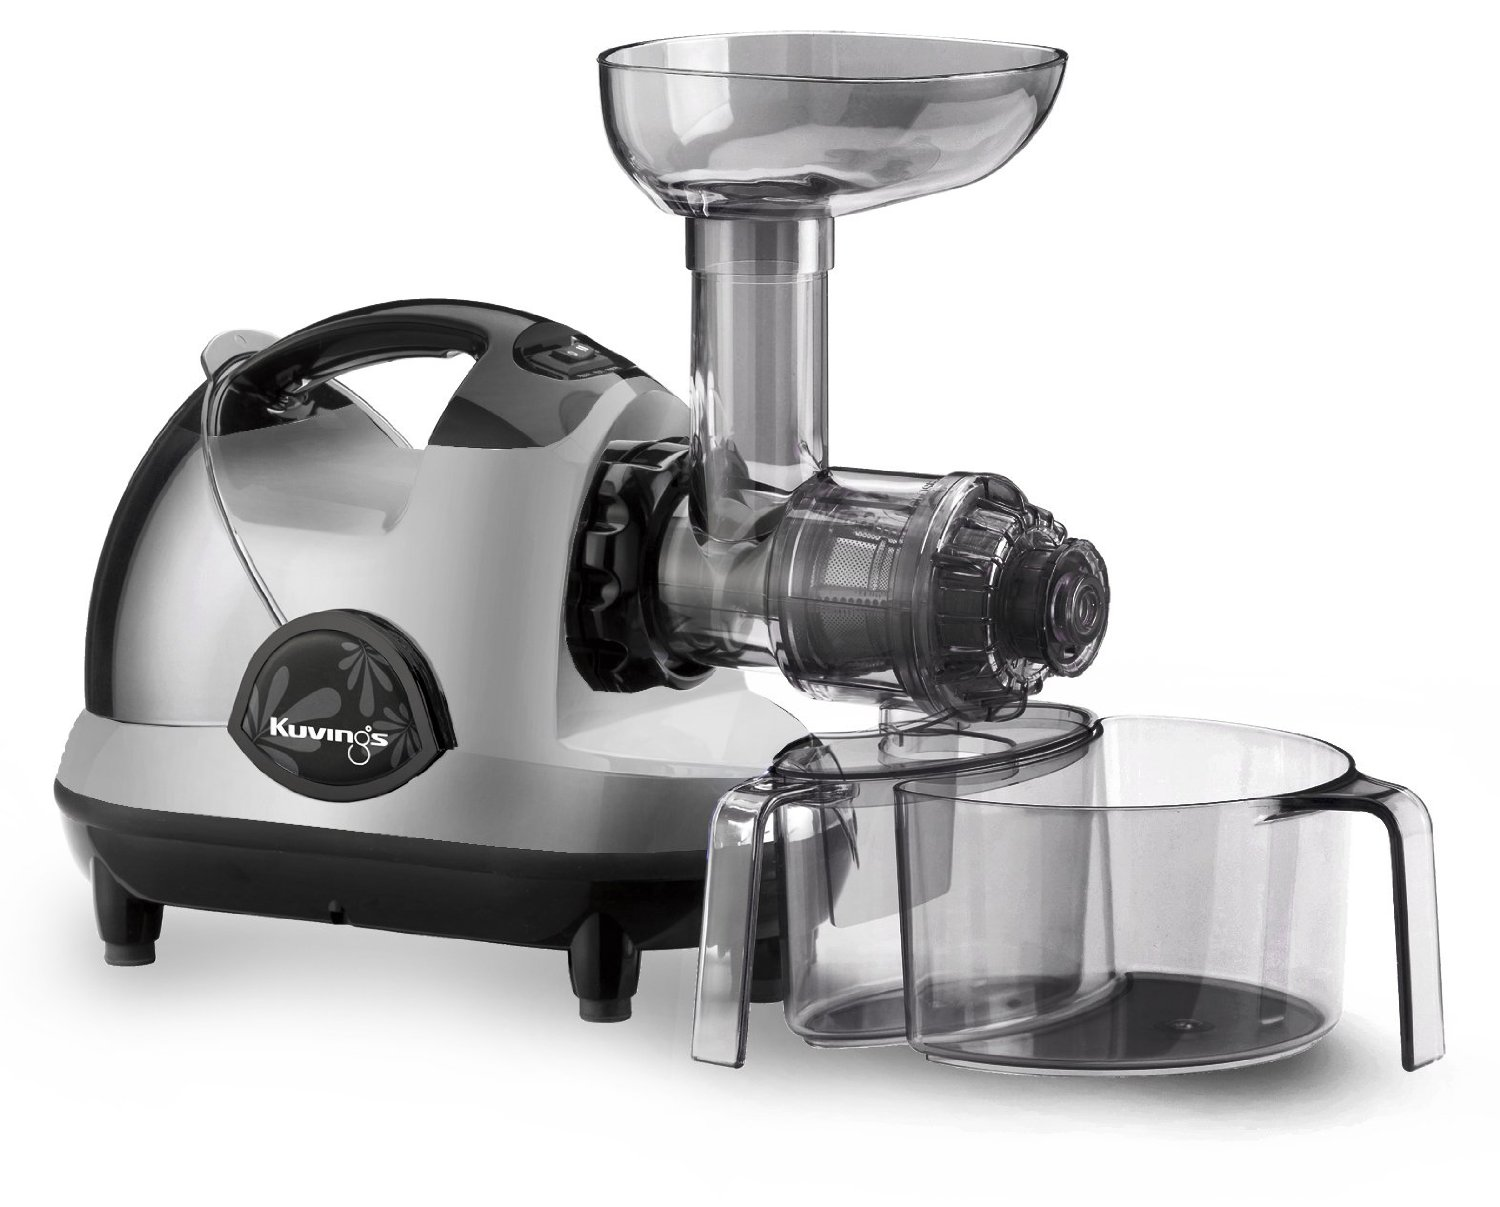 Best Inexpensive Slow Juicer : Kuvings NJE3580U Masticating Slow Juicer